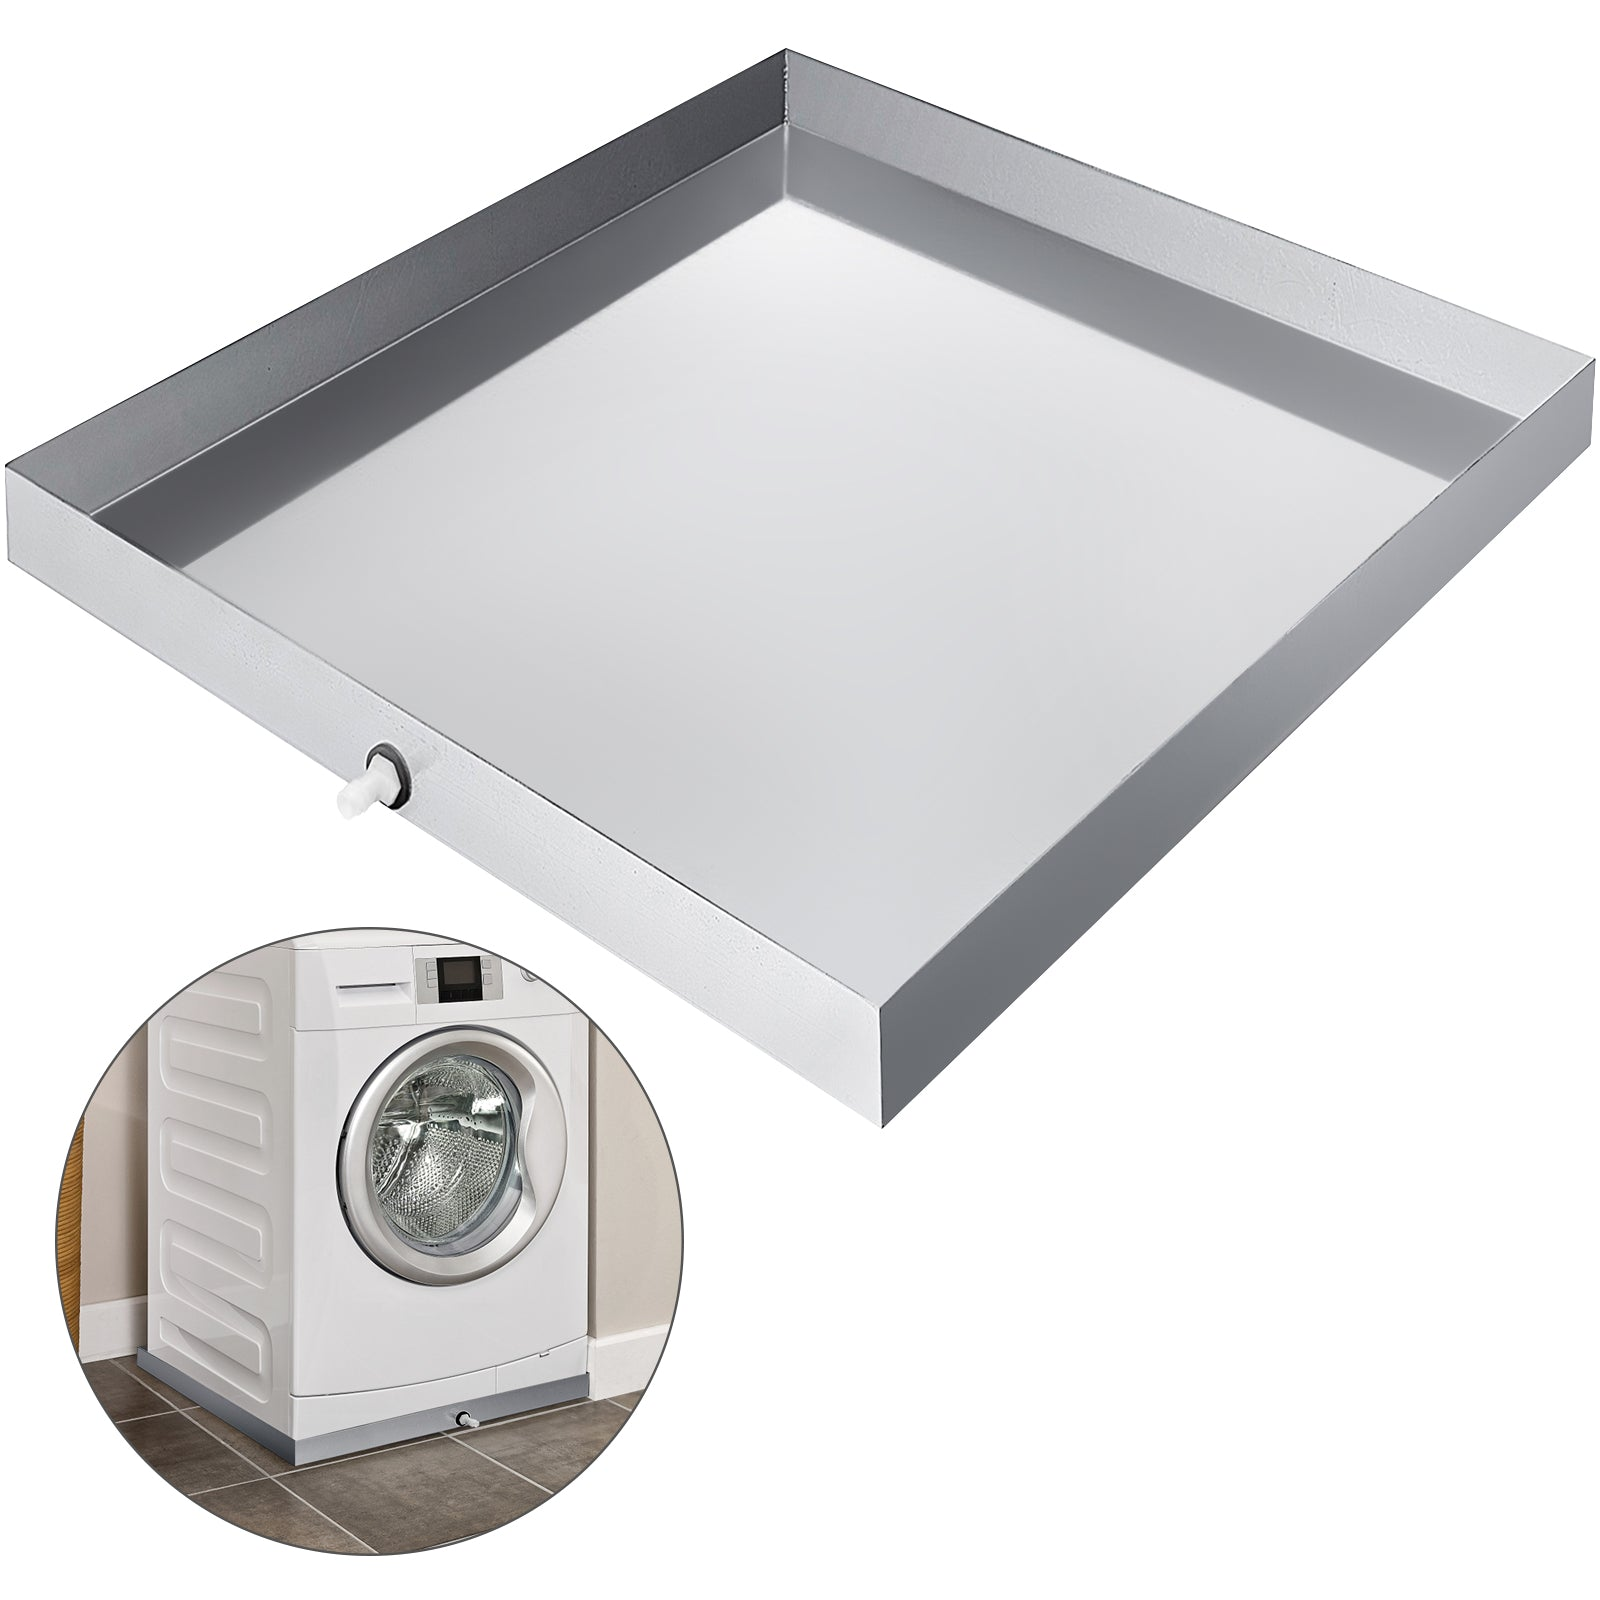 63x68cm Washing Machine Drain Pan Stainless Steel Washer Tray Brushed Finish